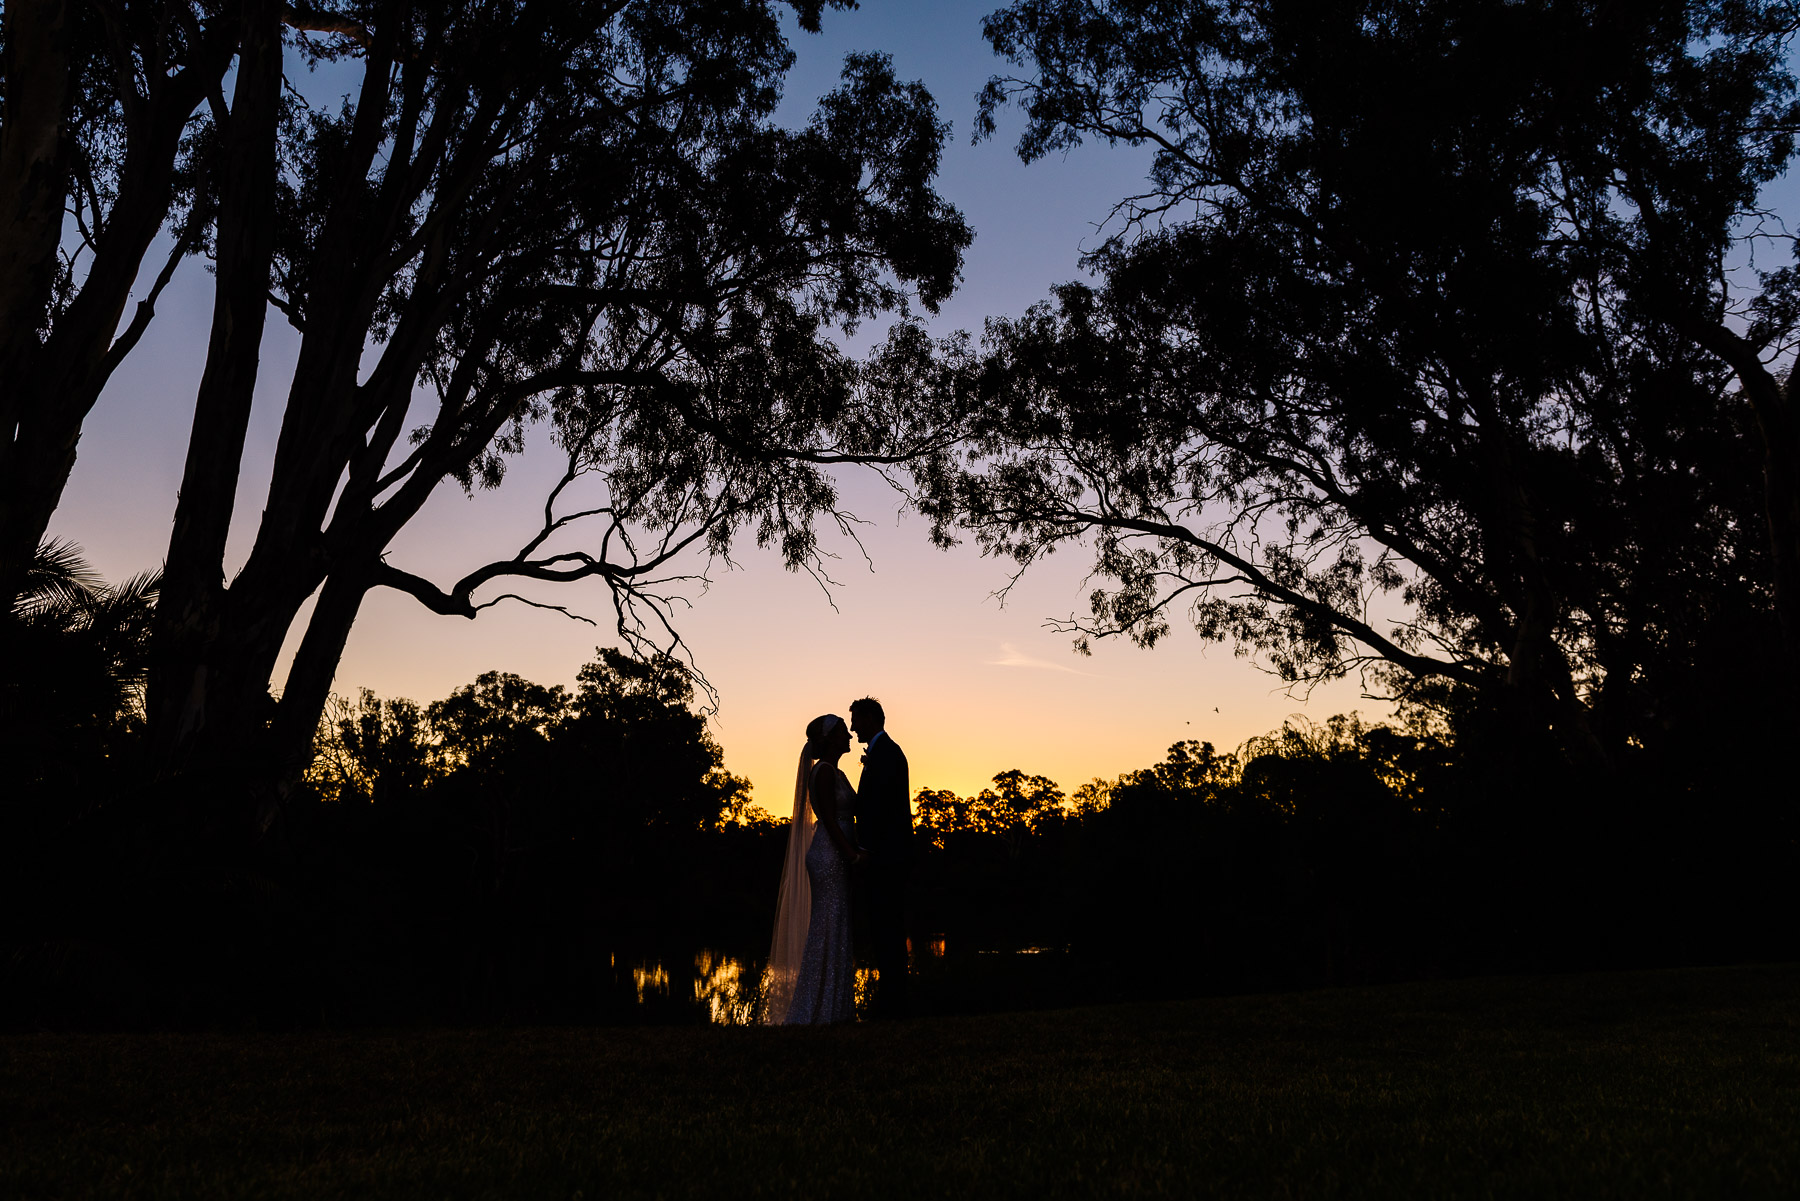 Justin_and_Jim_Best_Of_Wedding_Photography-54.jpg